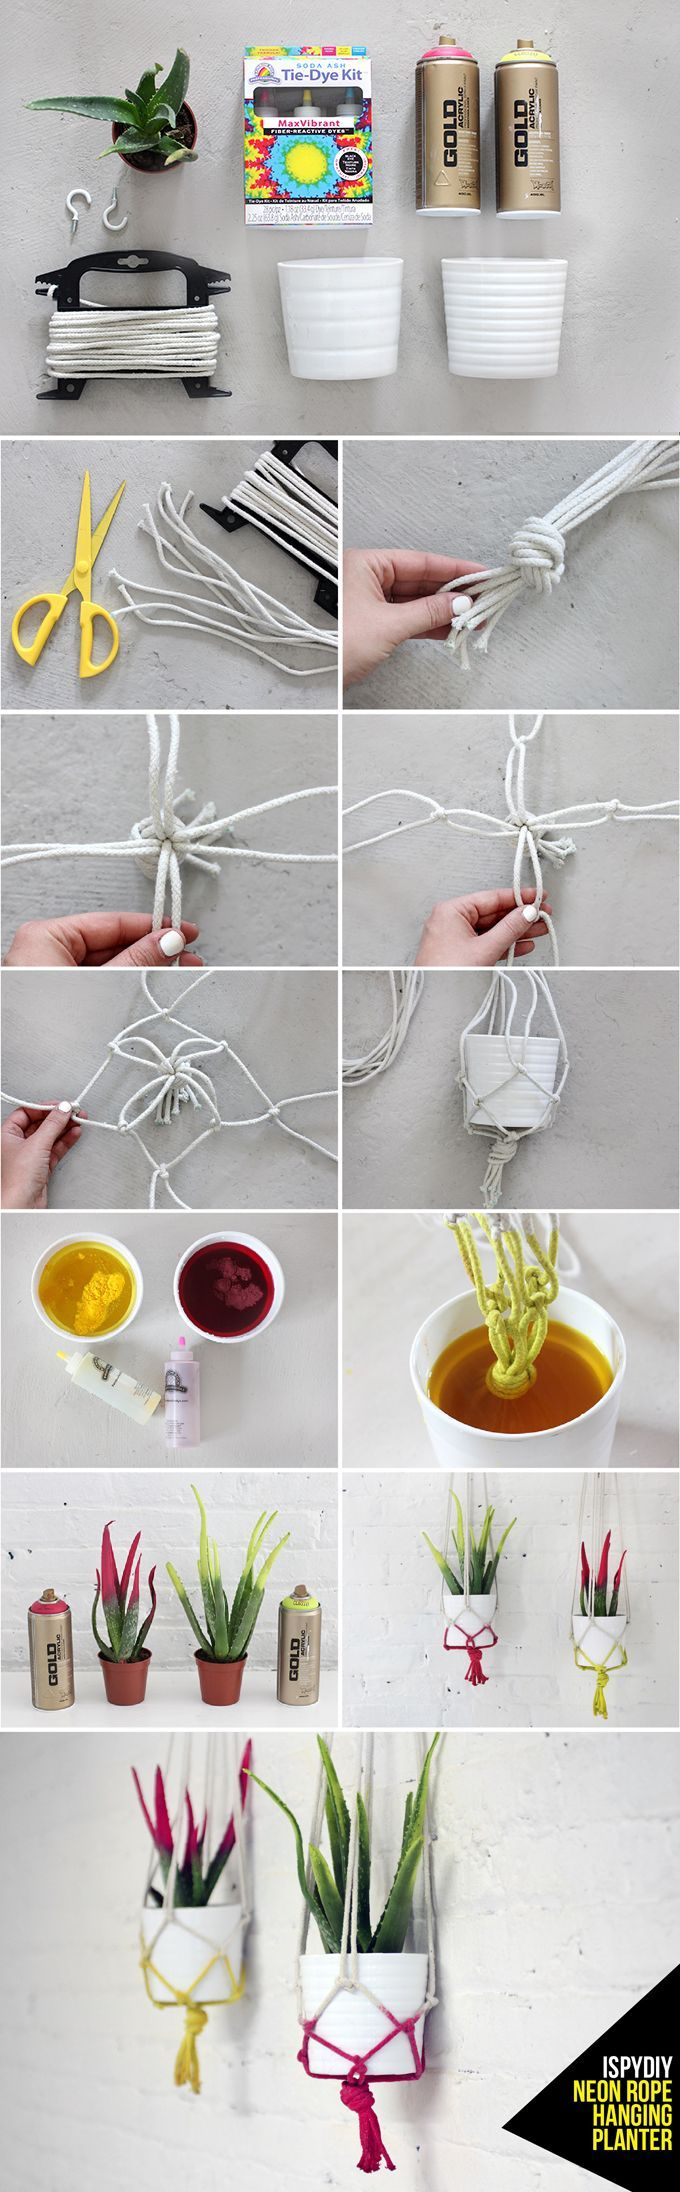 25 Awesome DIY Crafting Ideas For Working With Ropes 15